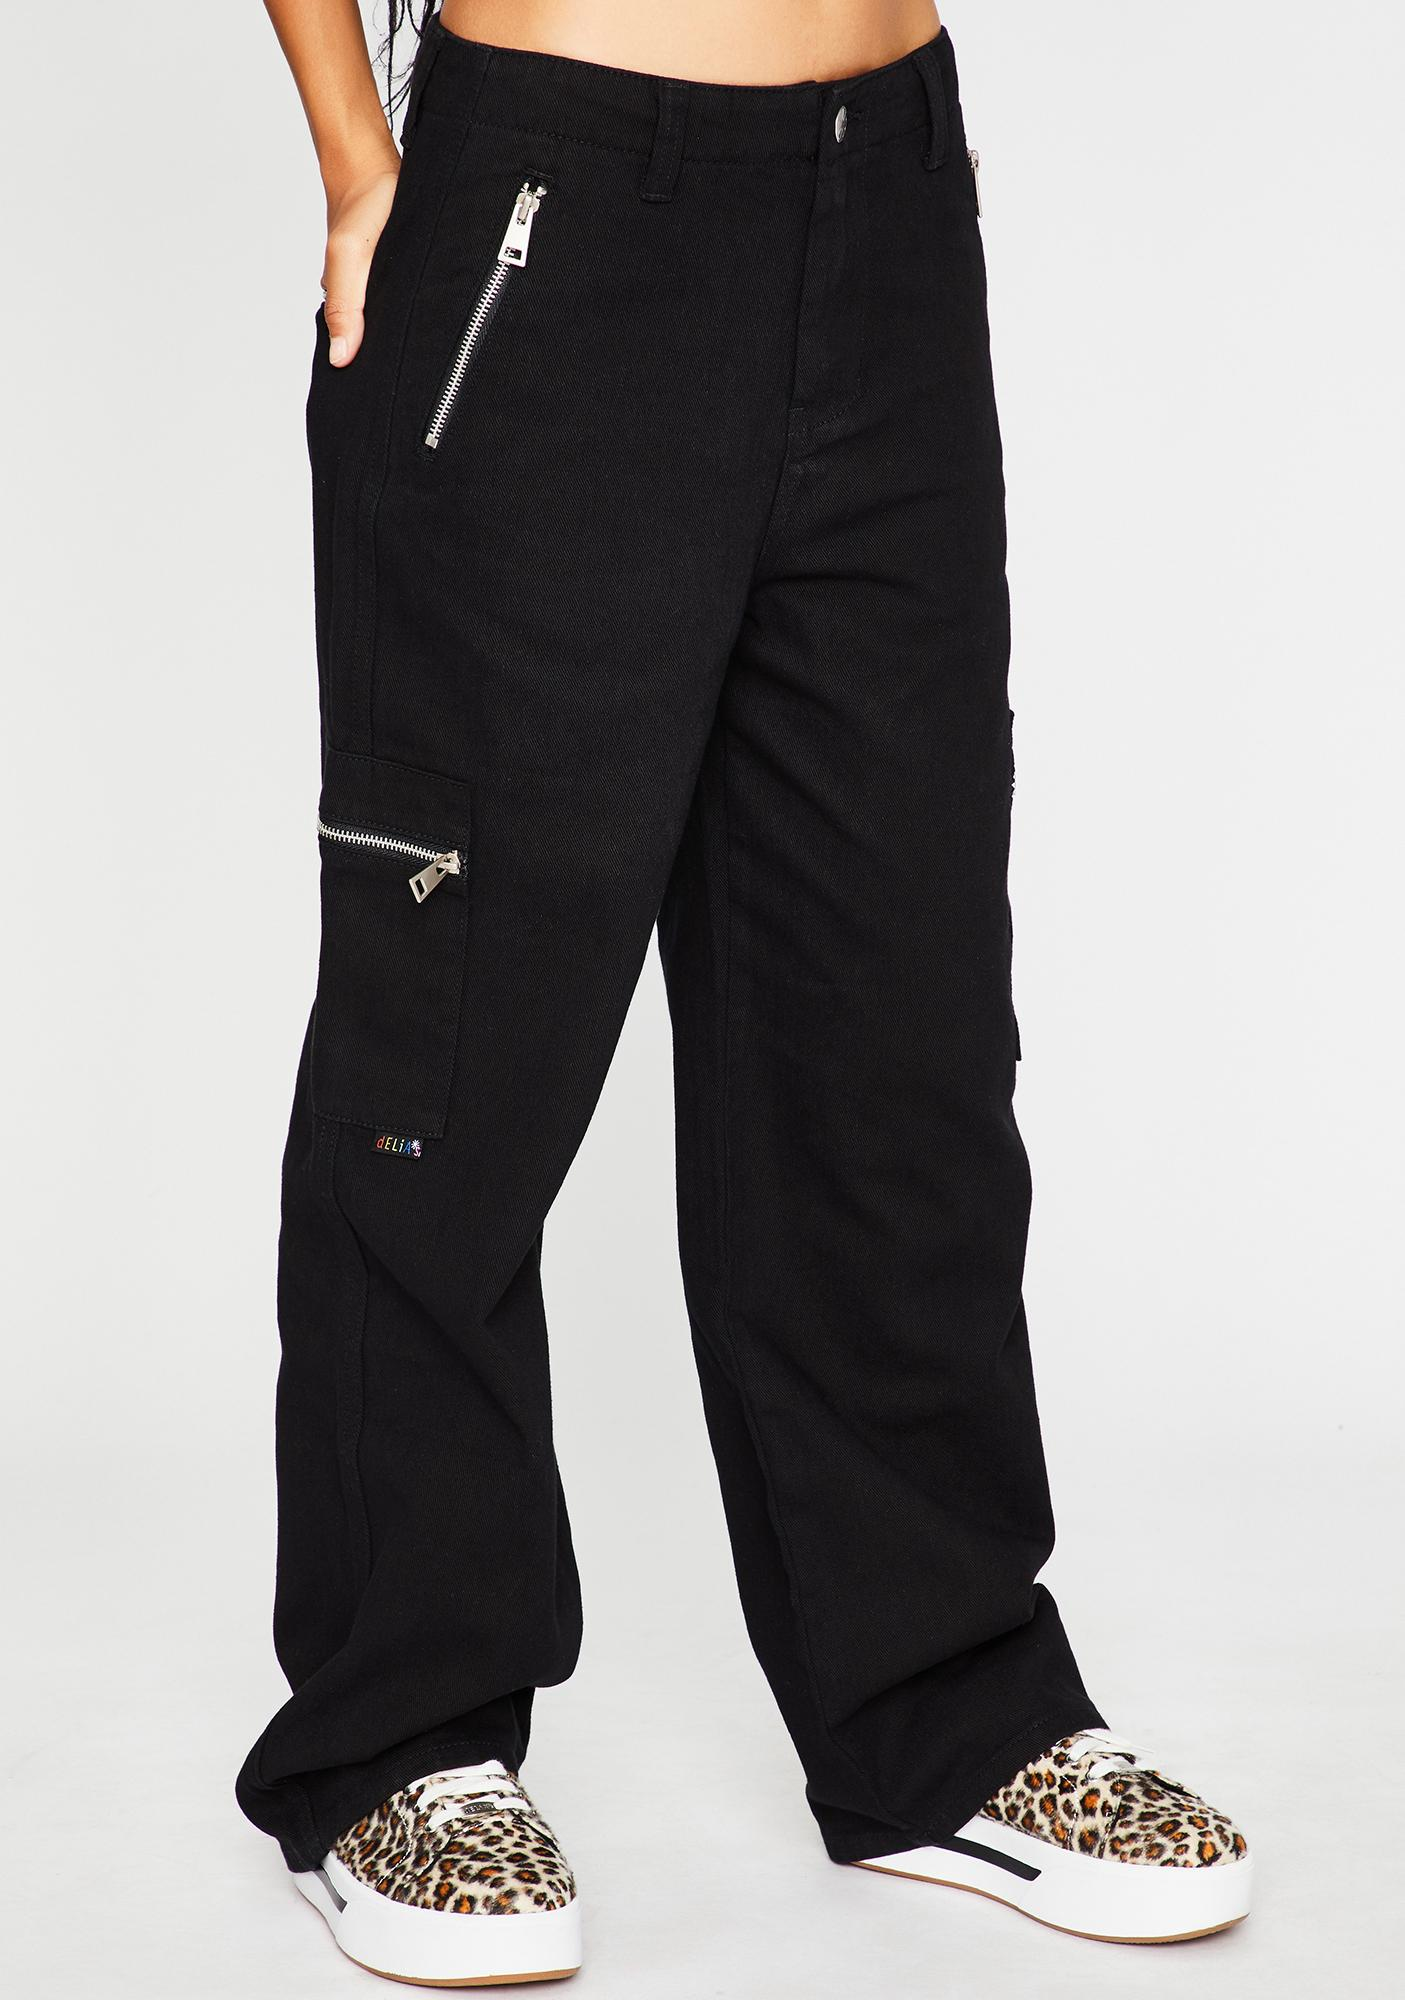 South Island Roll up Cargo Trousers 5-6 years